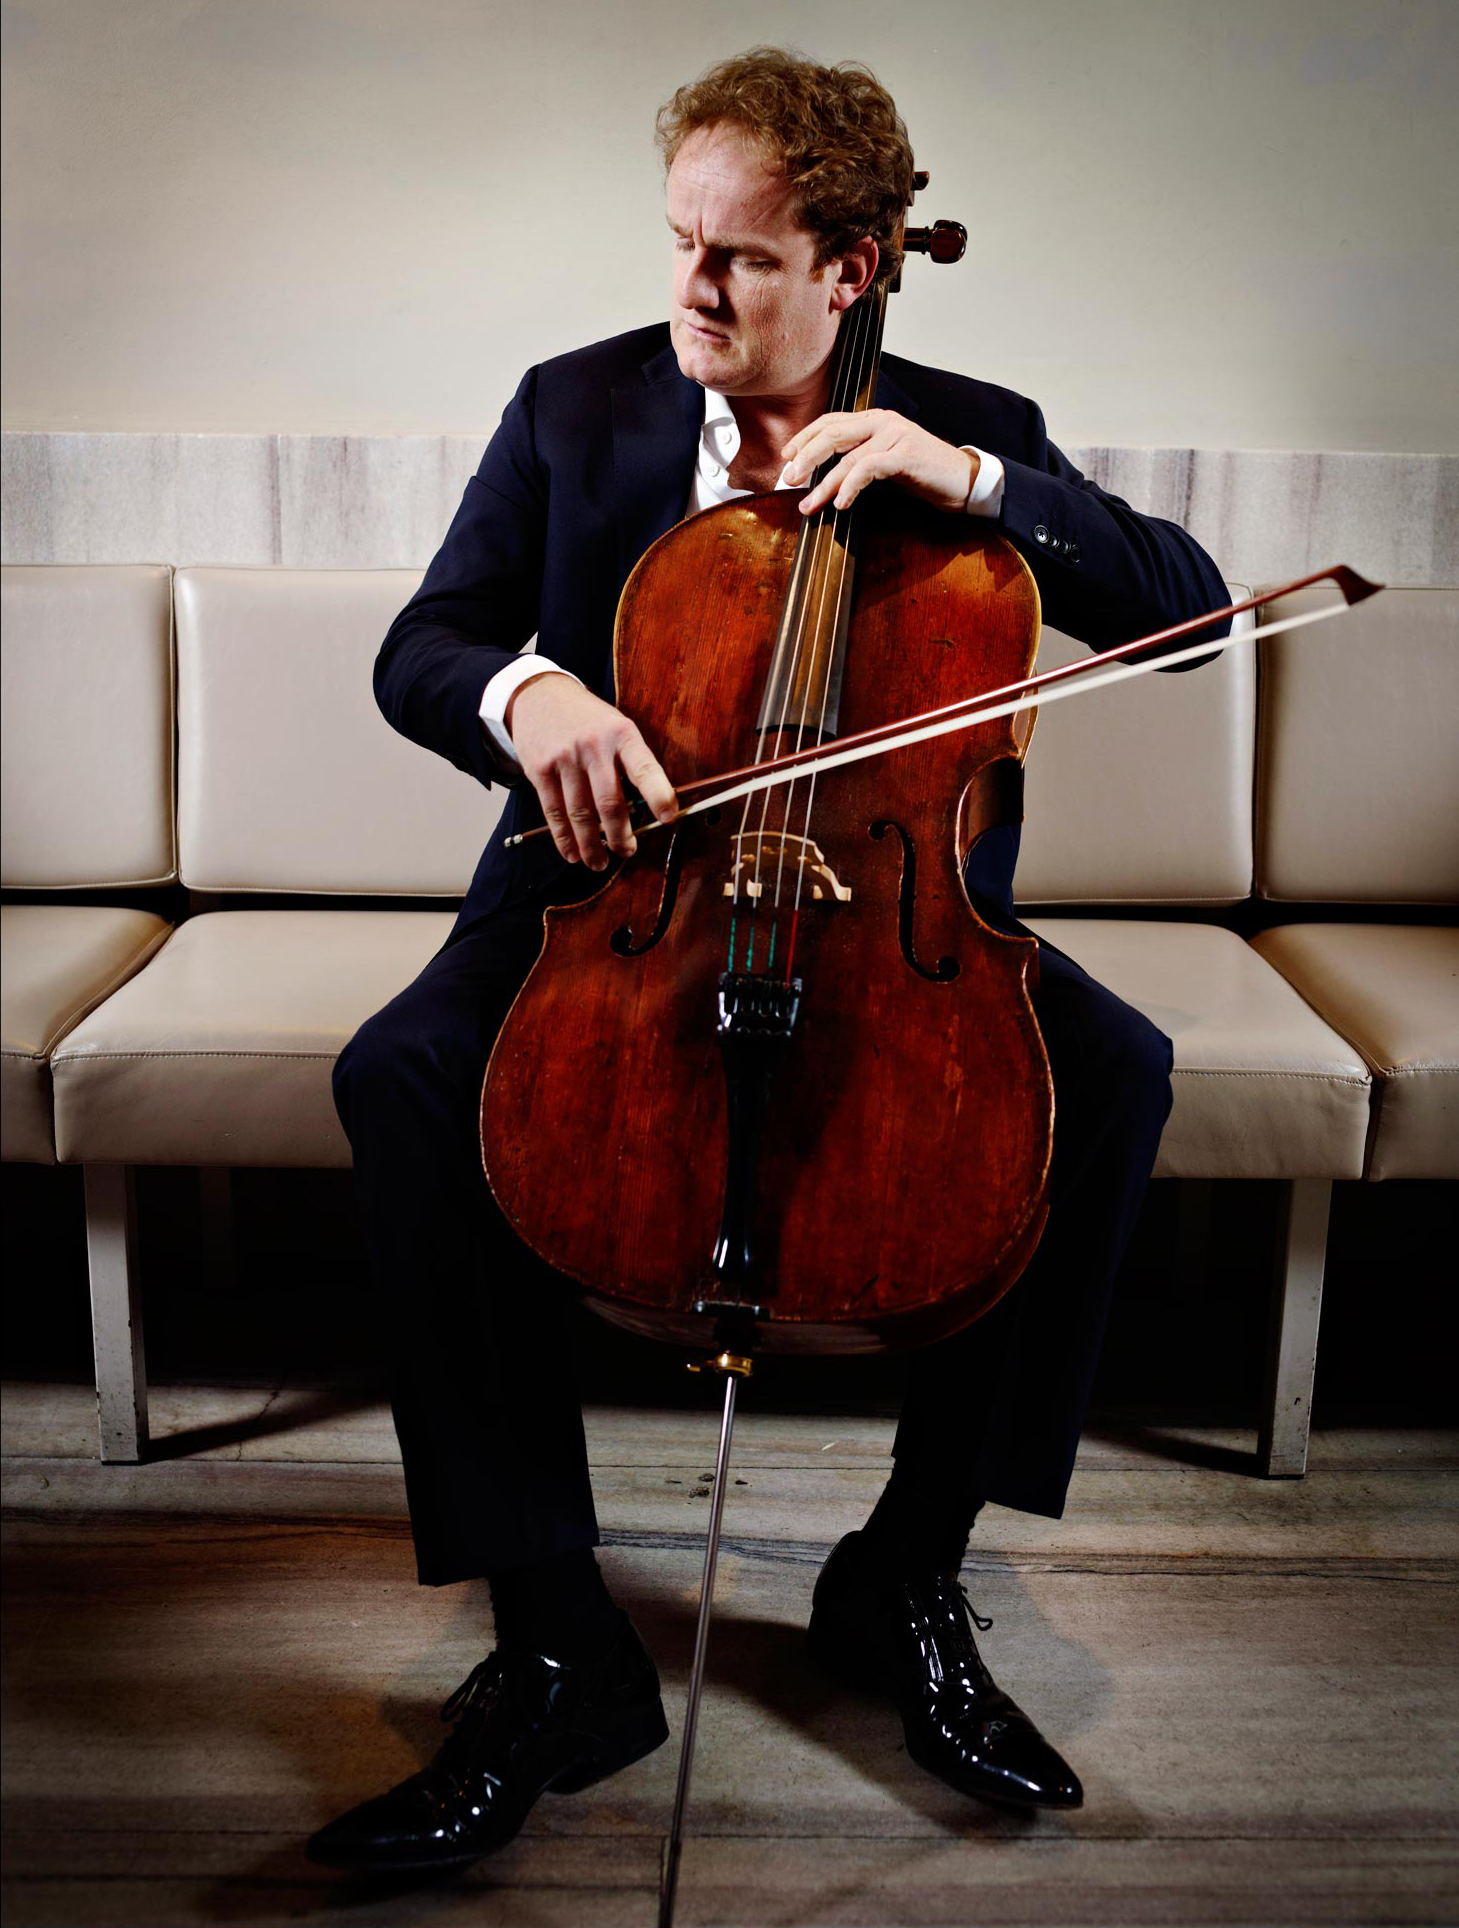 Floris Mijnders, Cellist